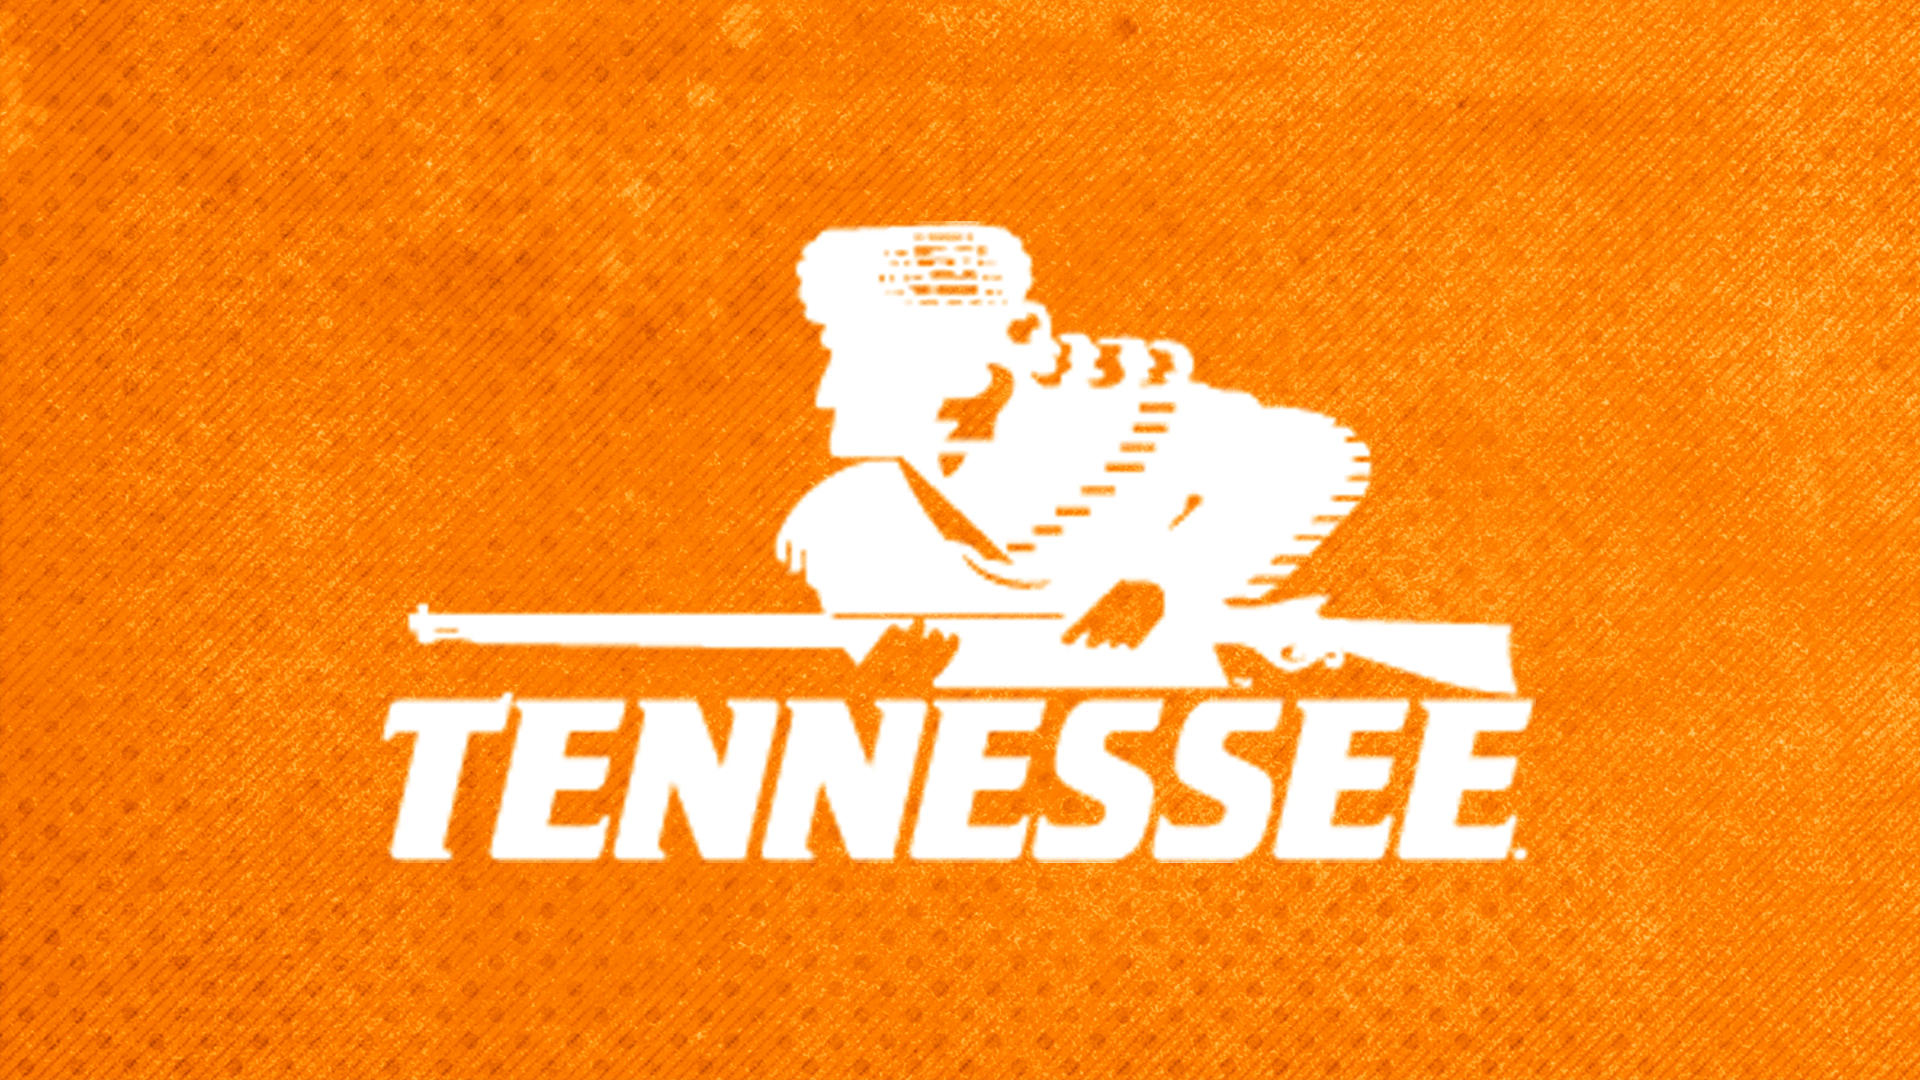 26+ Tennessee Wallpaper  Images